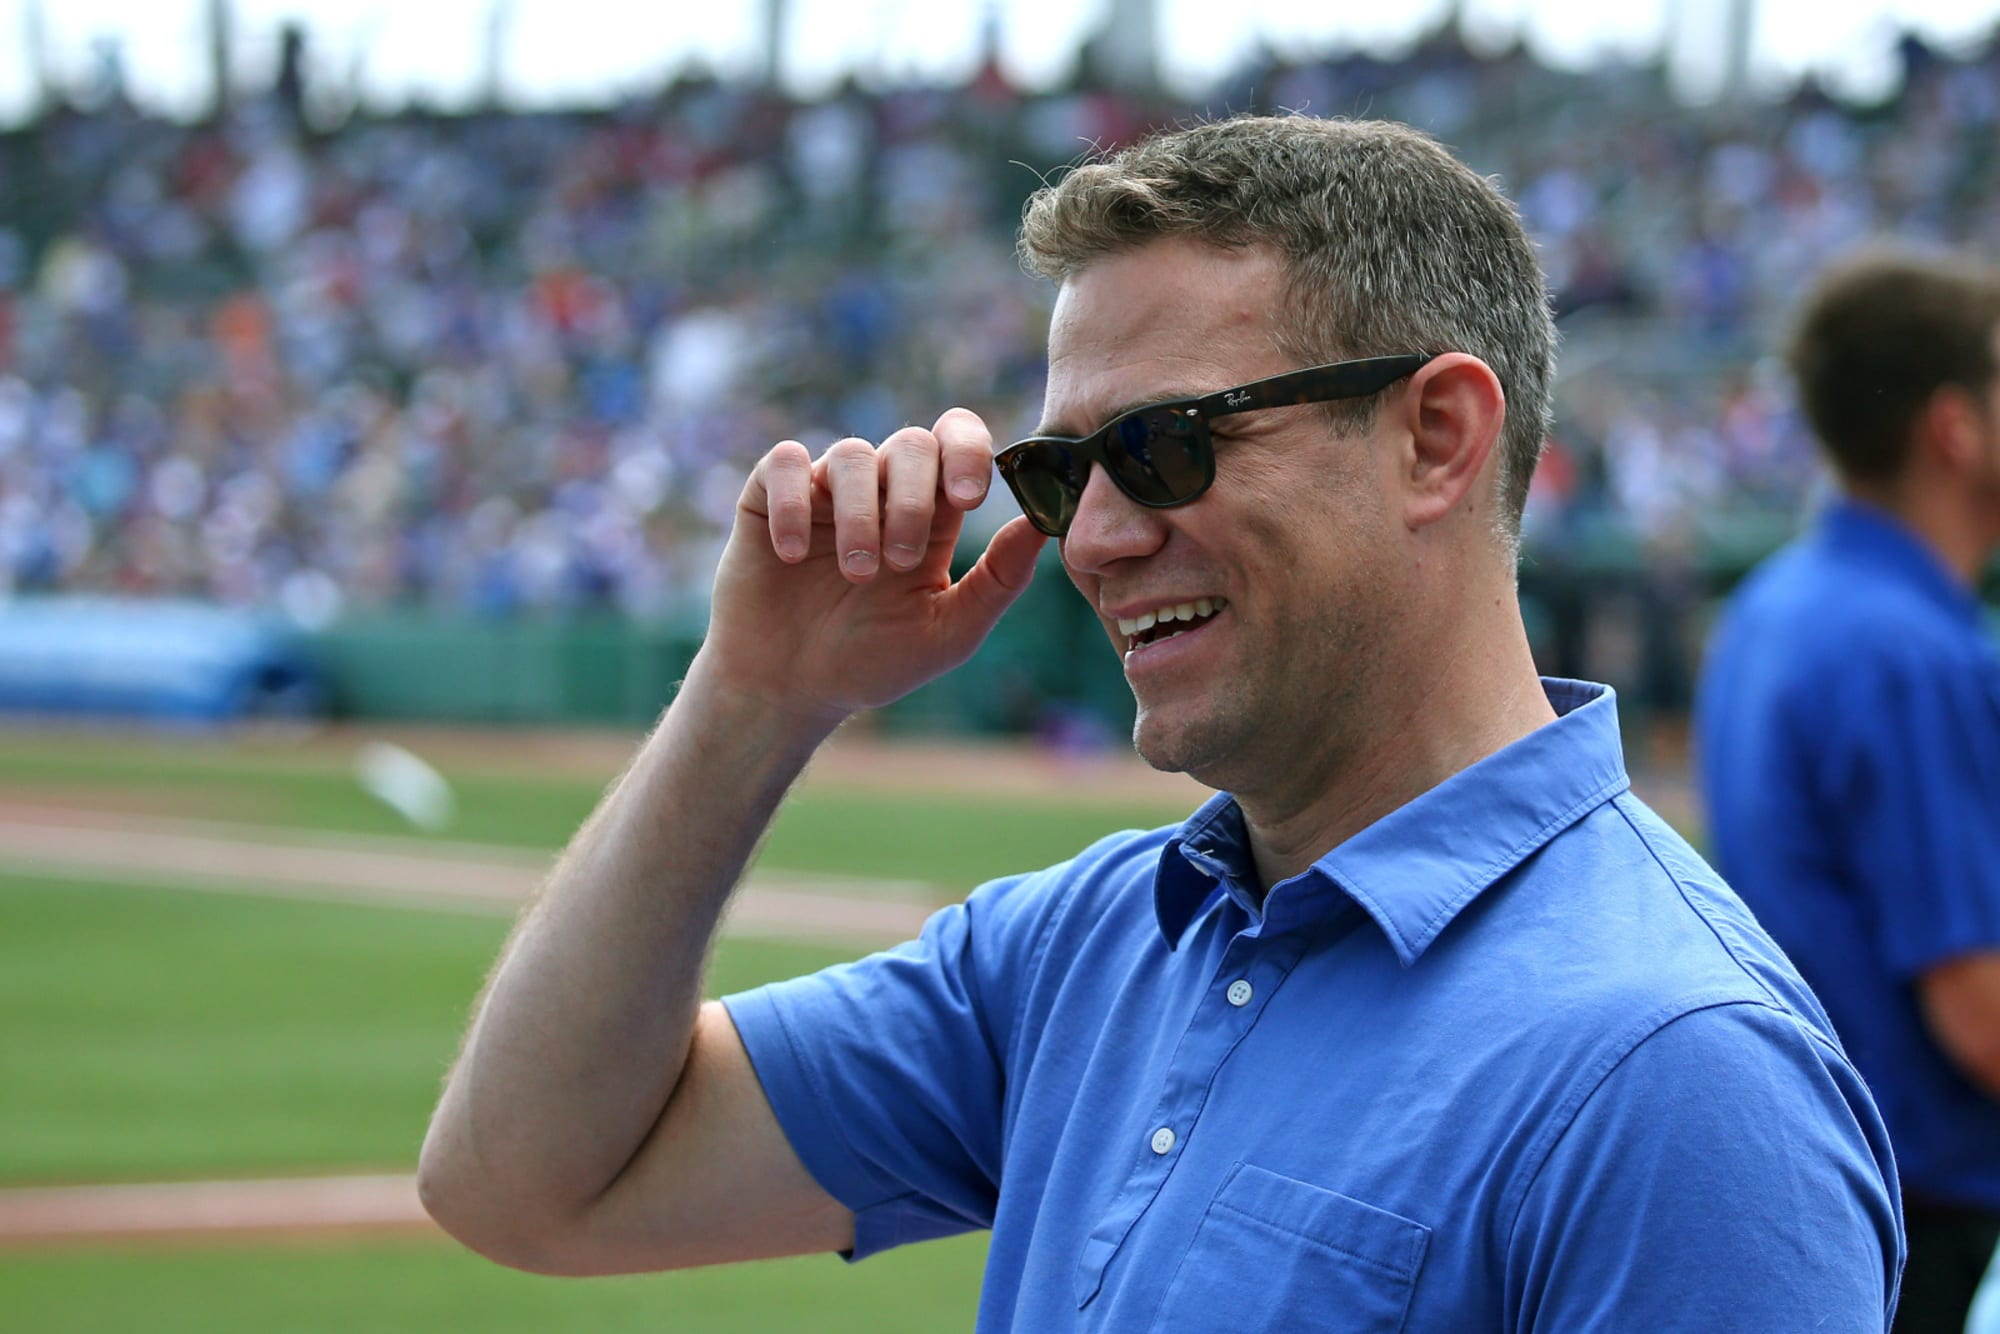 Could Theo Epstein replace Brodie Van Wagenen as Mets GM?